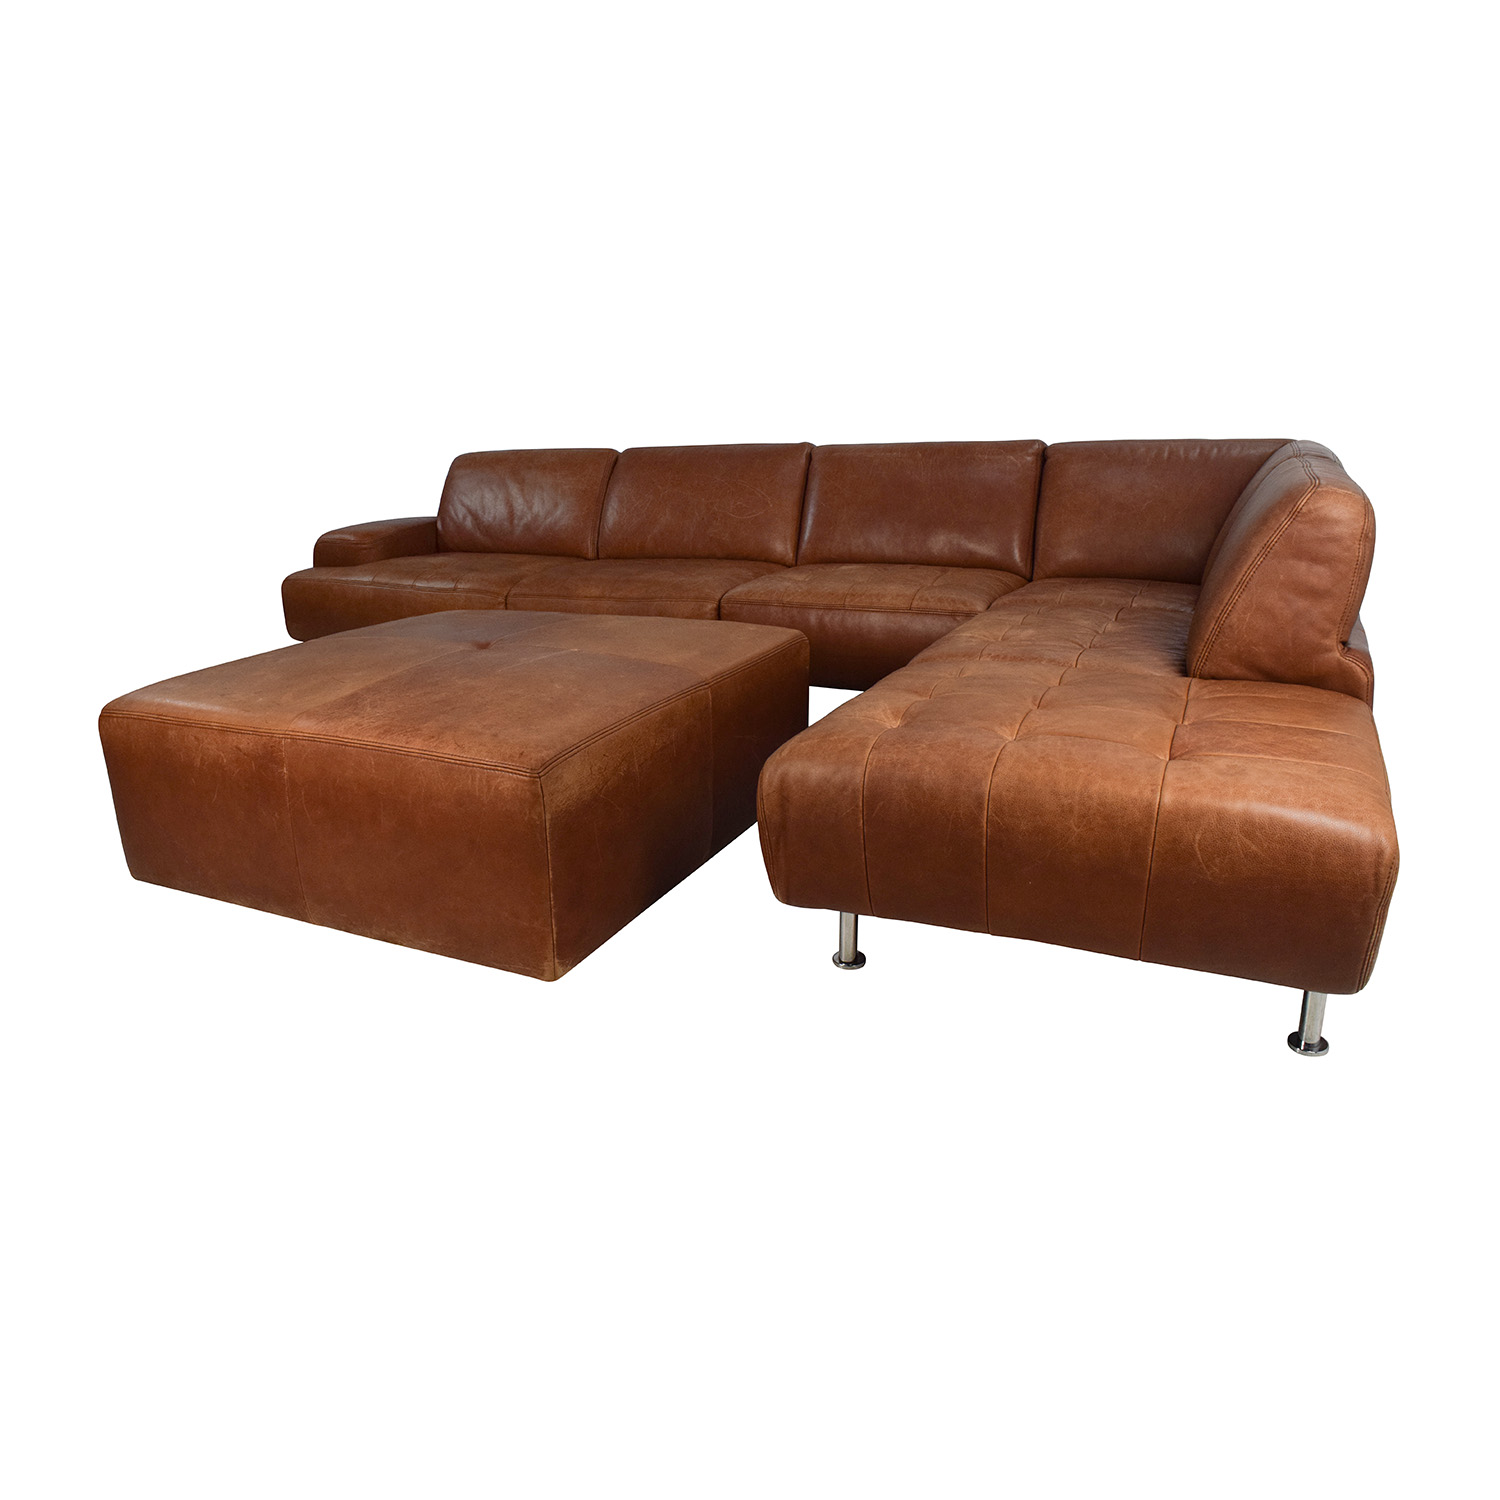 schillig sofa outlet excellent ecksofa designer outlet ewald schillig sessel sam leder details. Black Bedroom Furniture Sets. Home Design Ideas